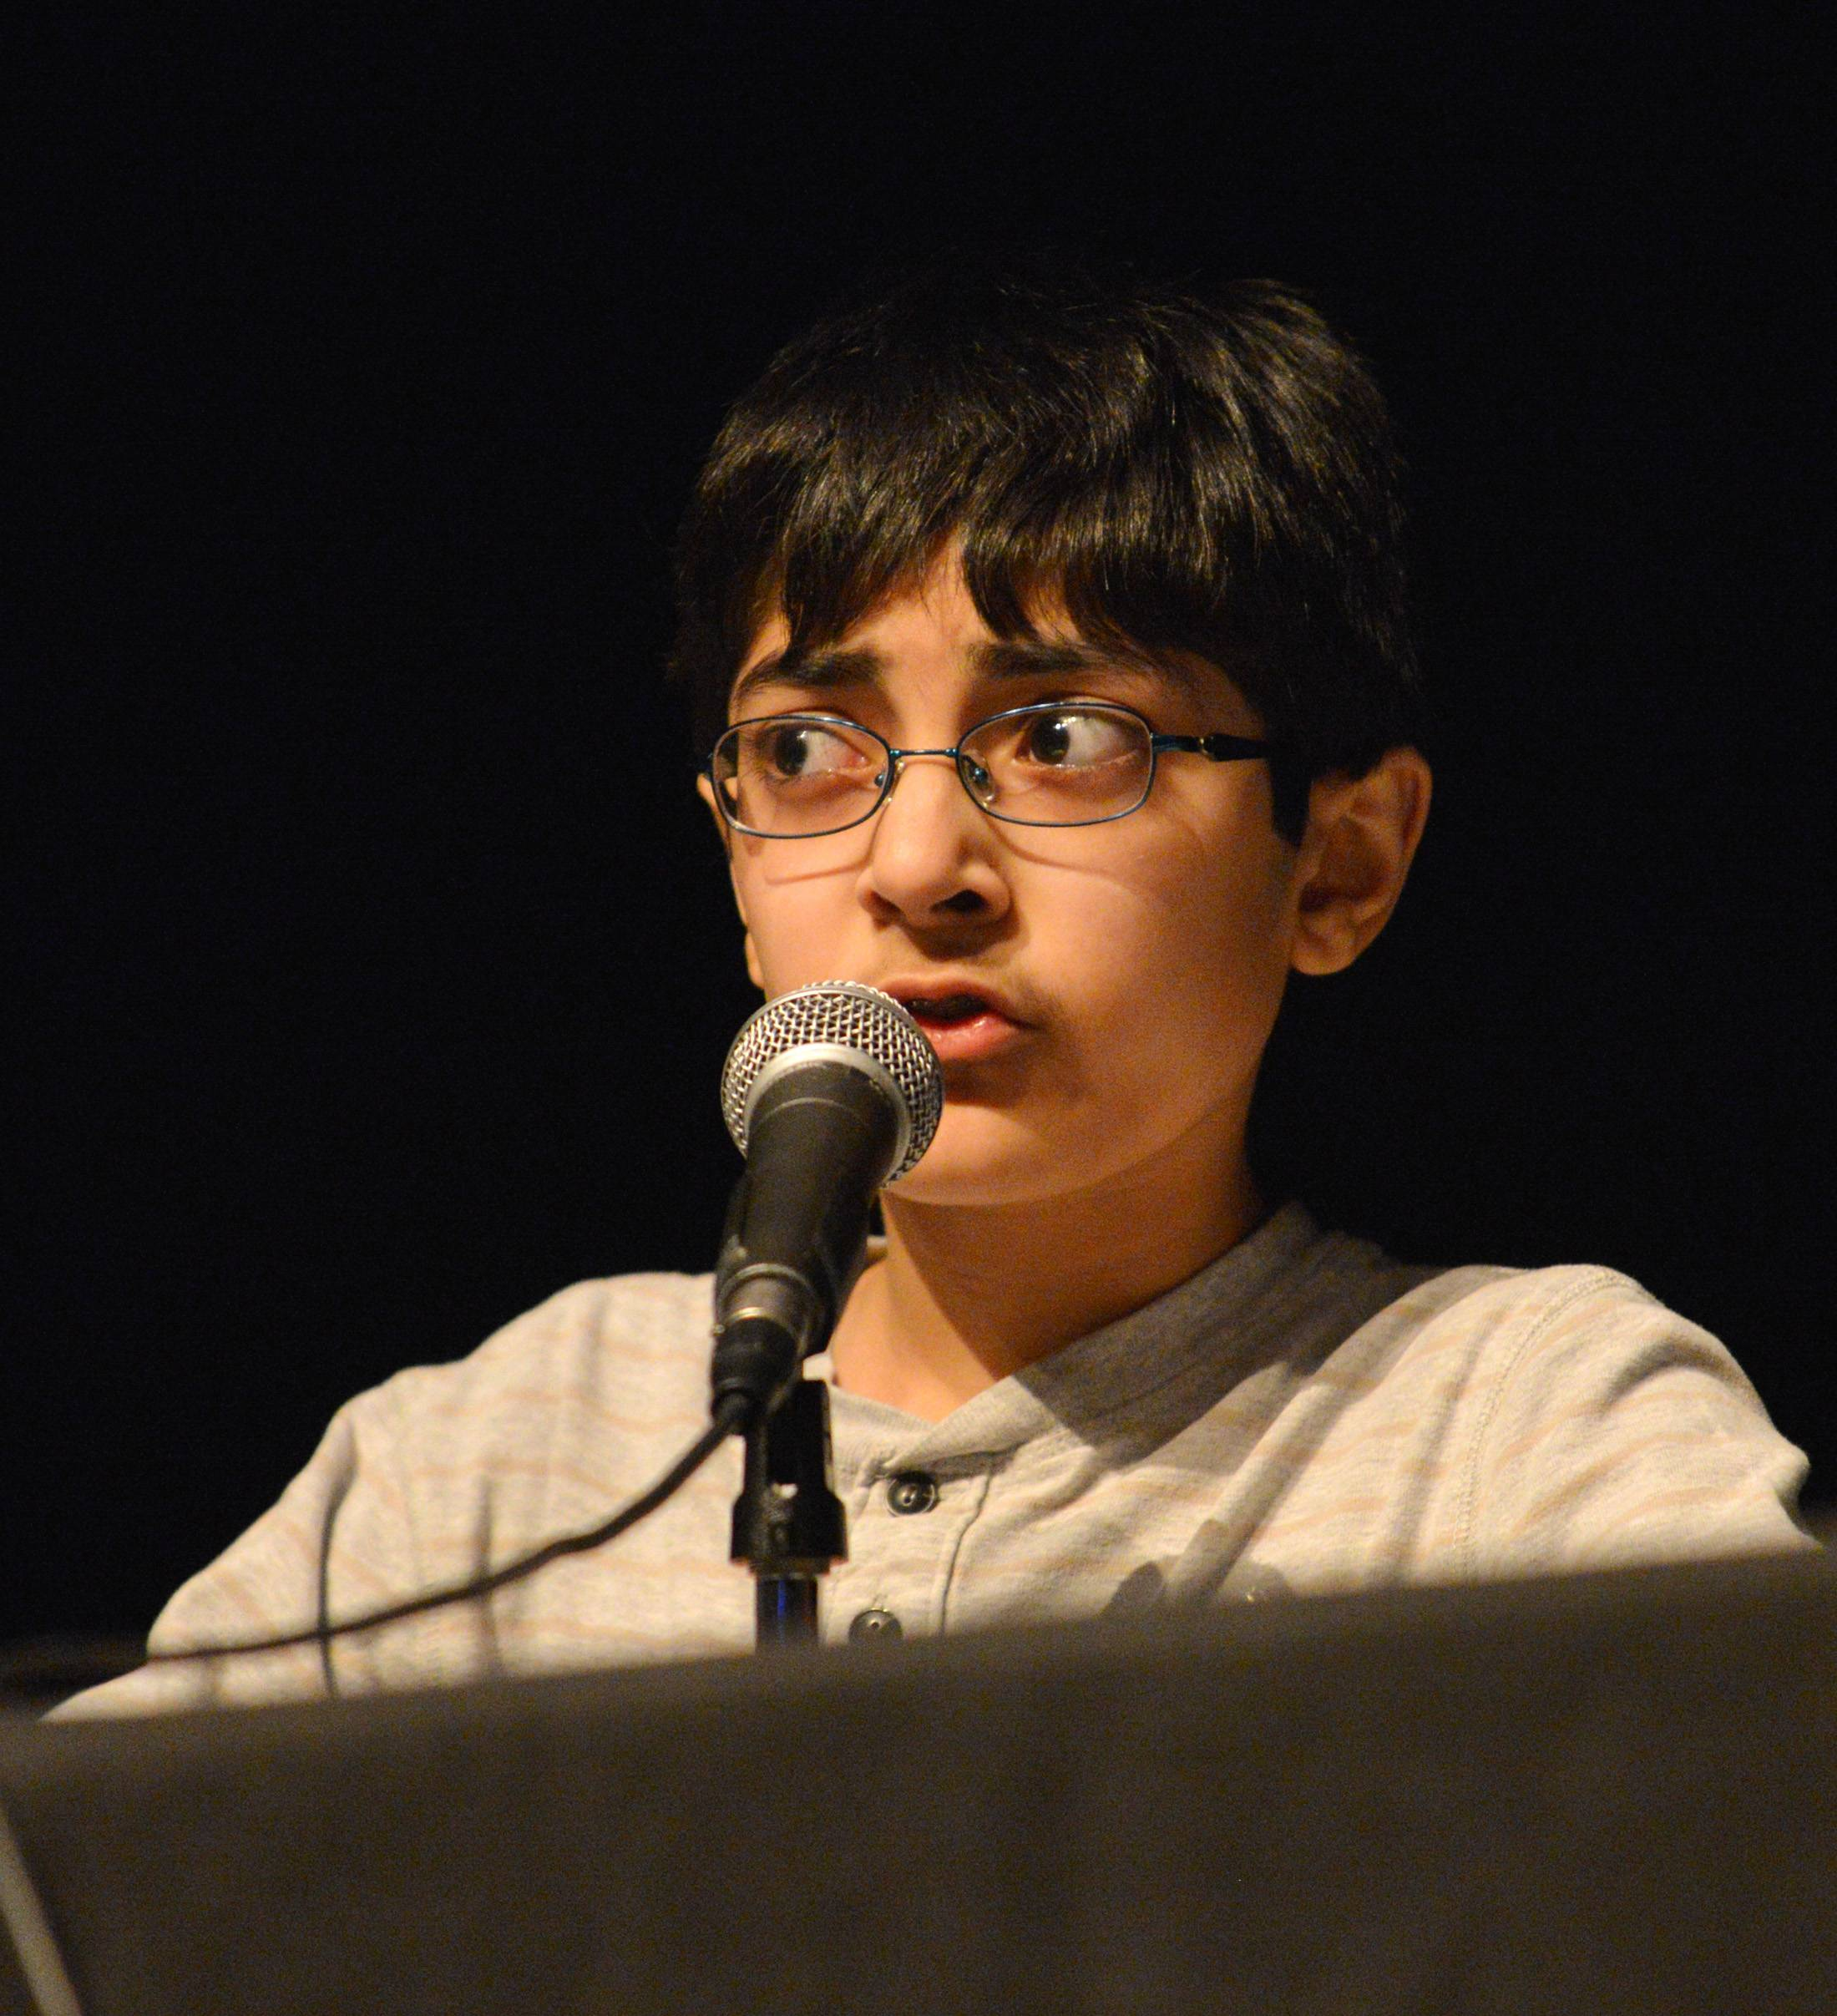 Aditya Badlani of Oak Brook, who finished in third place, answers a question in the final round of state-level competition of the National Geographic Bee in Glen Ellyn.